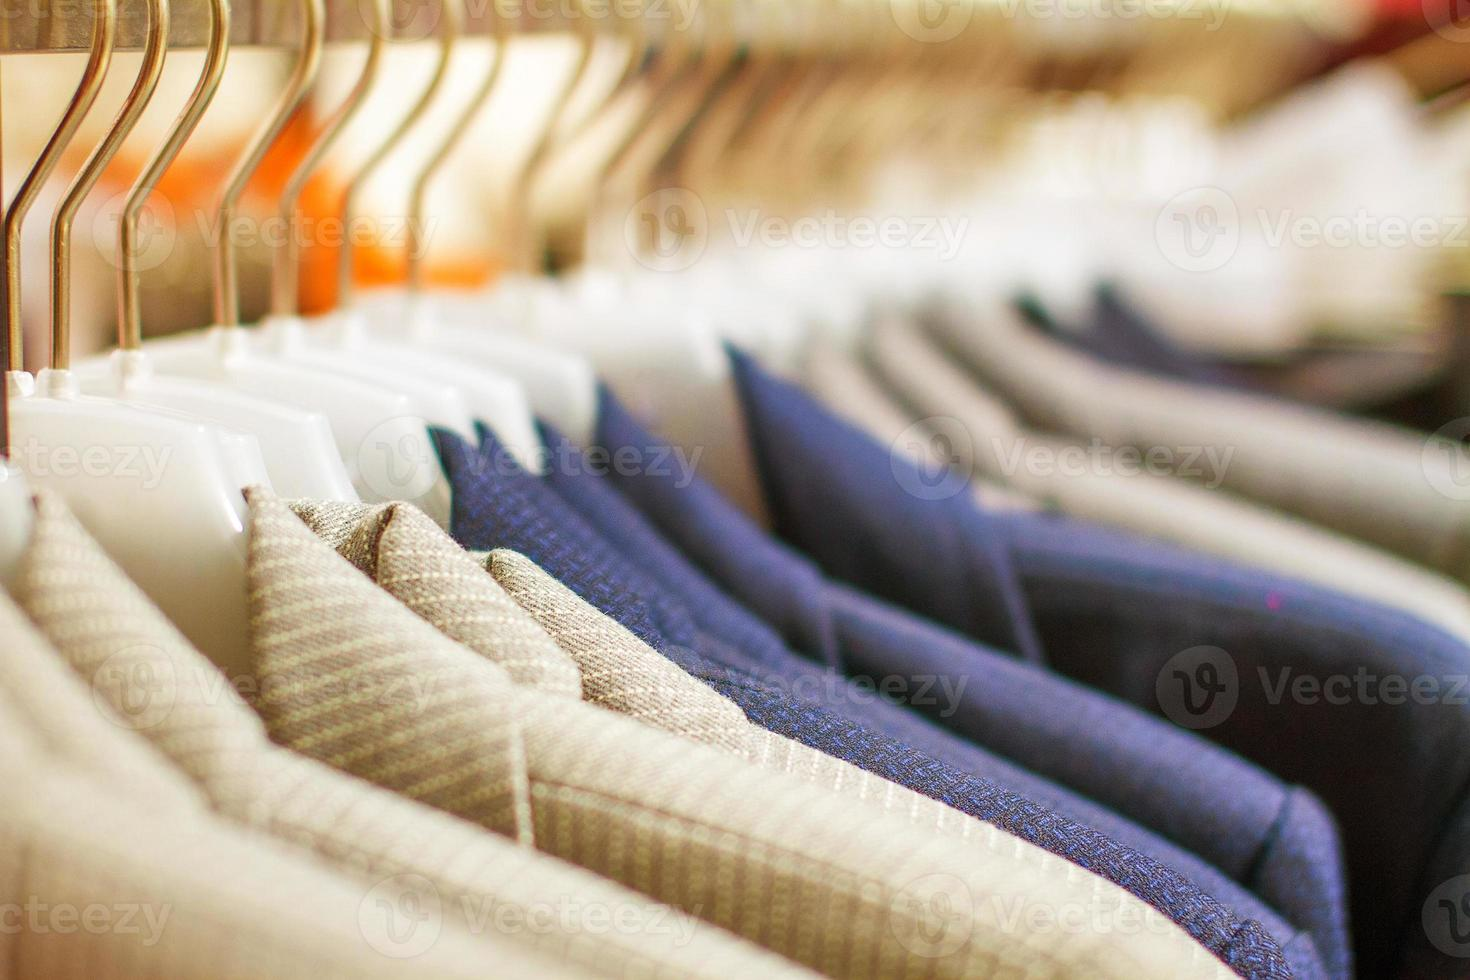 stylish jackets hanging on the rack in the store photo